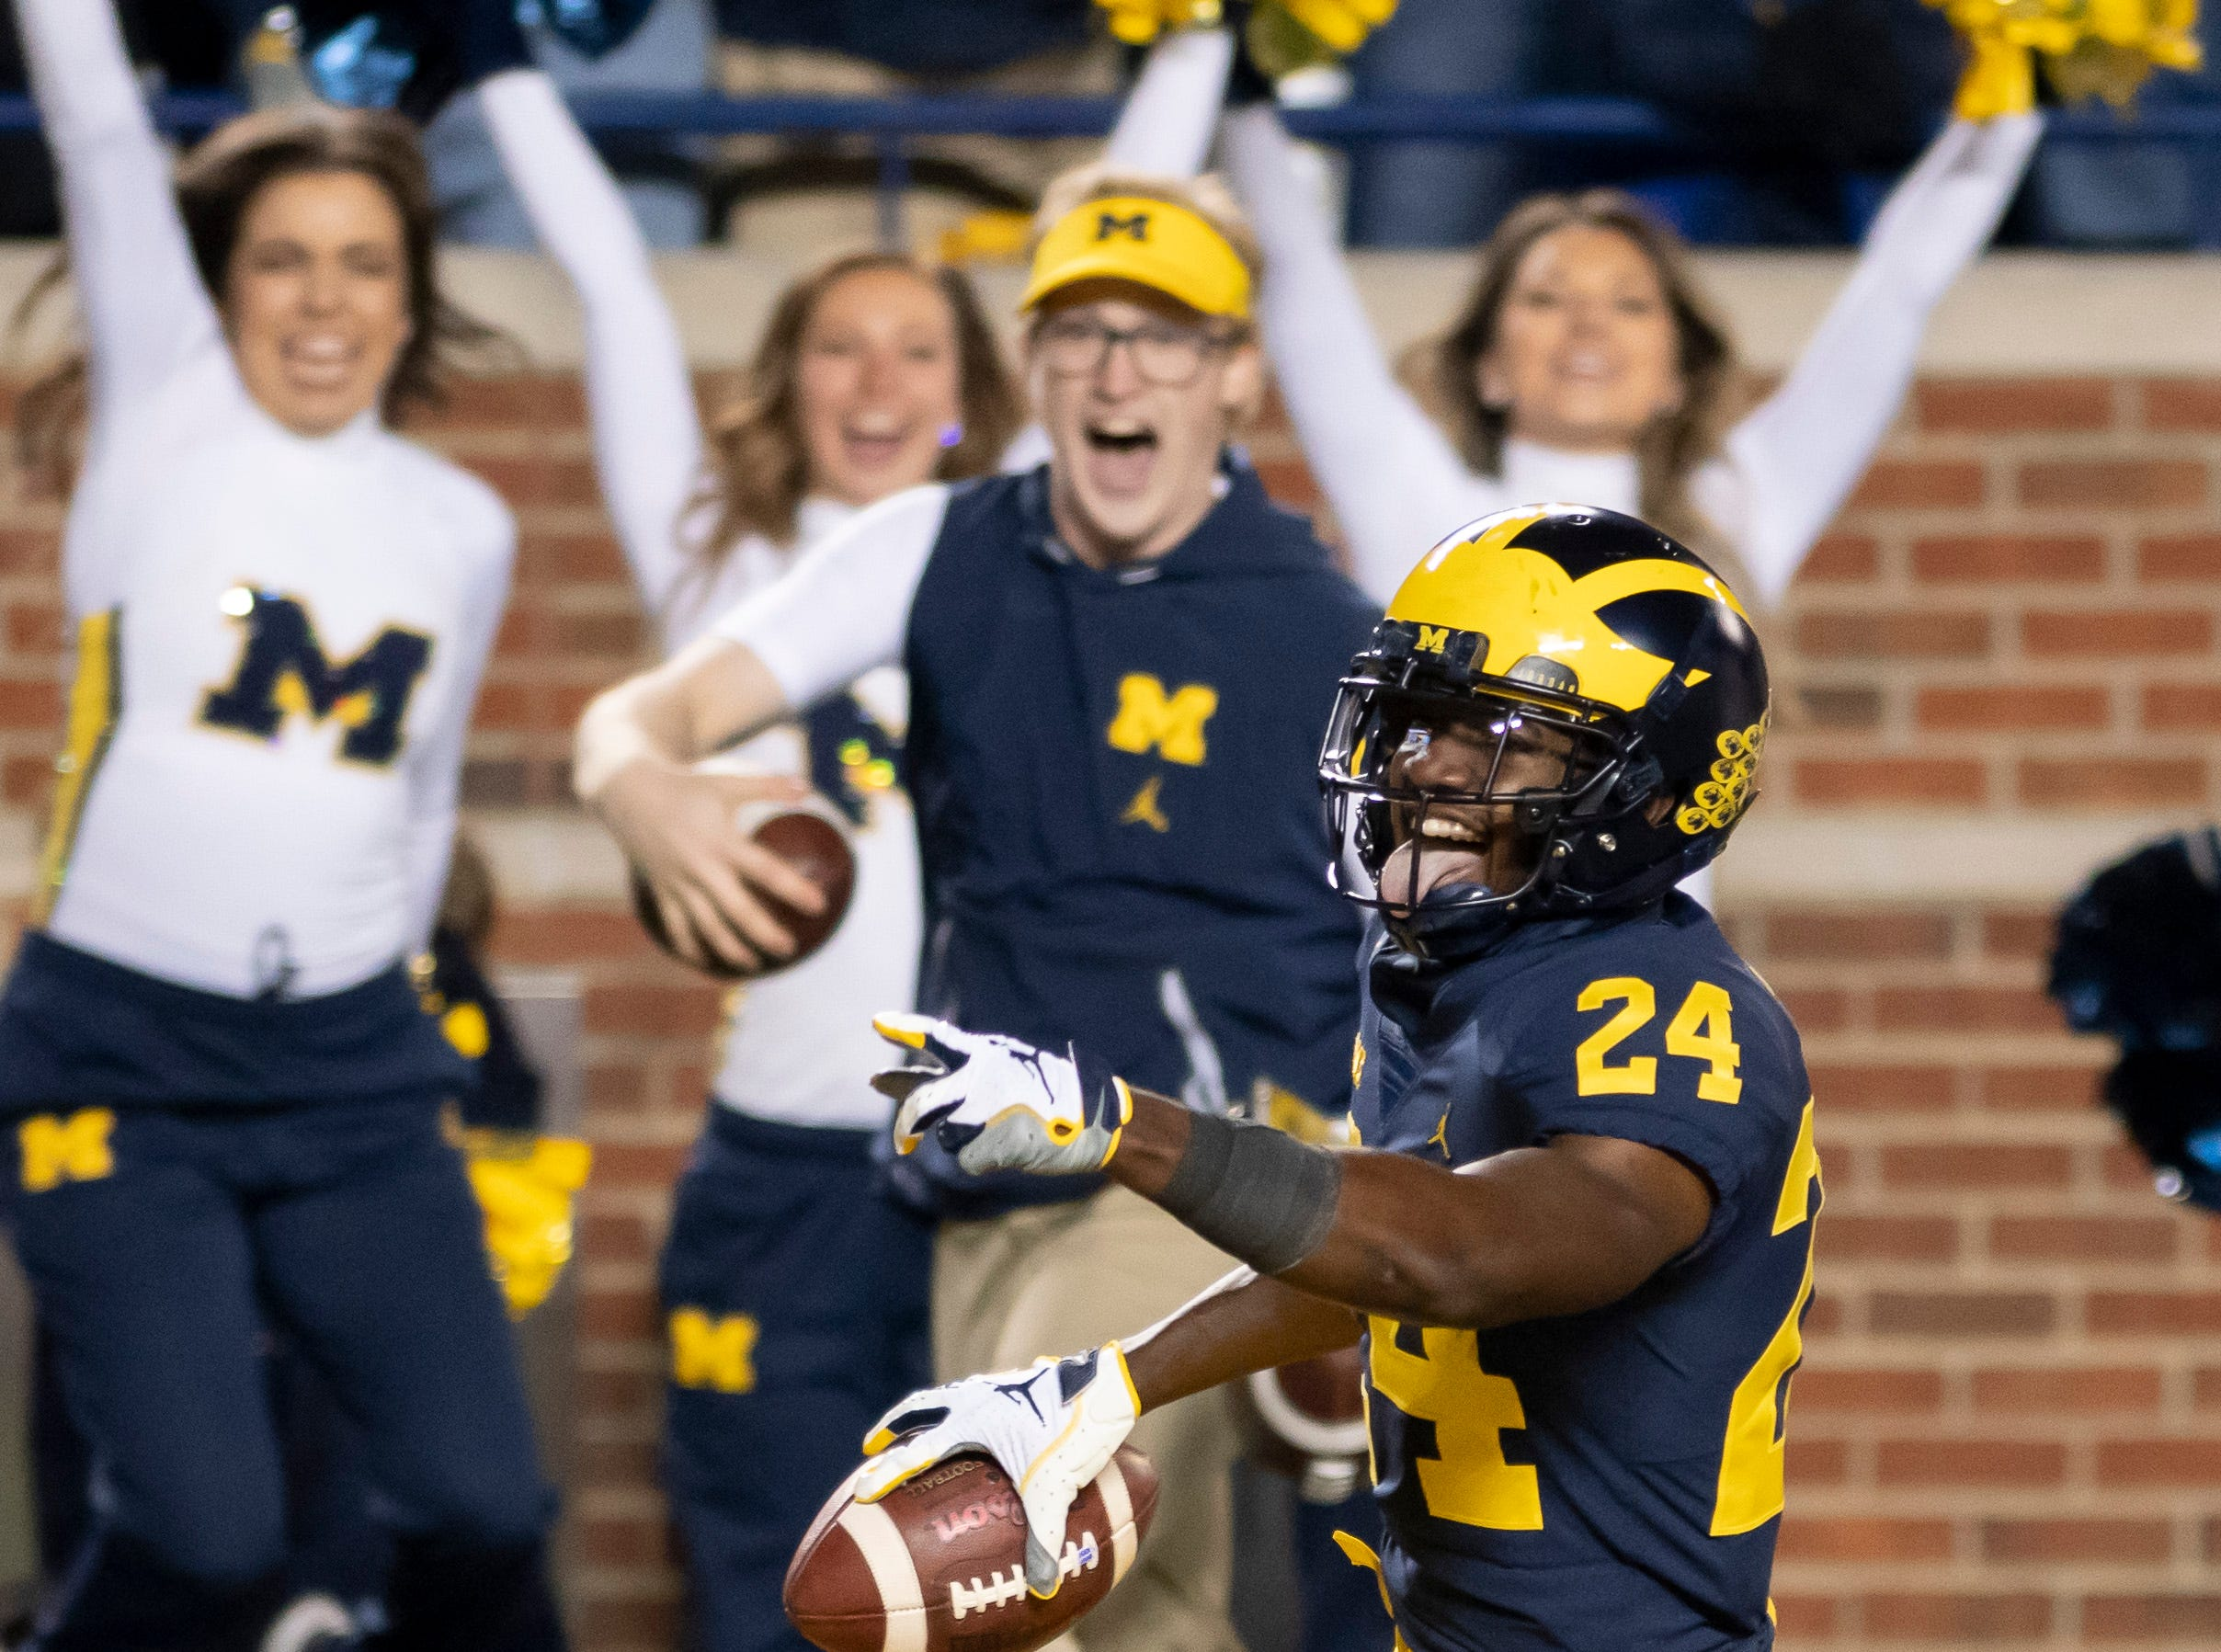 Michigan defensive back Lavert Hill (Detroit King) smiles and sticks his tongue out as he scores a touchdown after intercepting a fourth-quarter pass against Wisconsin at Michigan Stadium, in Ann Arbor, October 13, 2018. The Wolverines avenged a loss to the Badgers the previous year by pounding them at home 38-13.